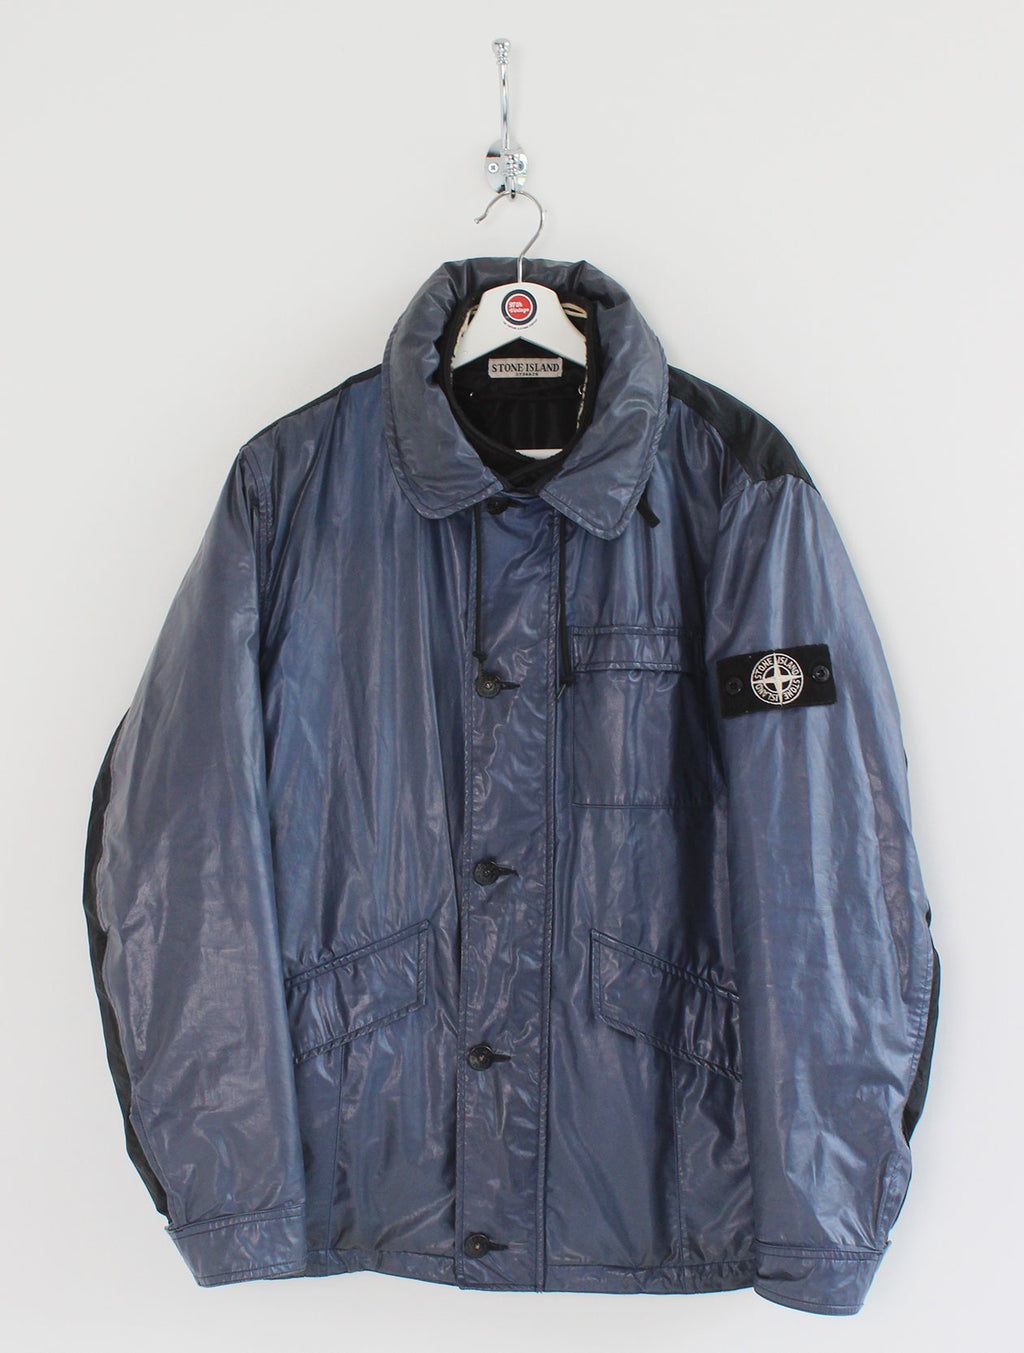 A/W 2011 Stone Island Ice Jacket (XL)